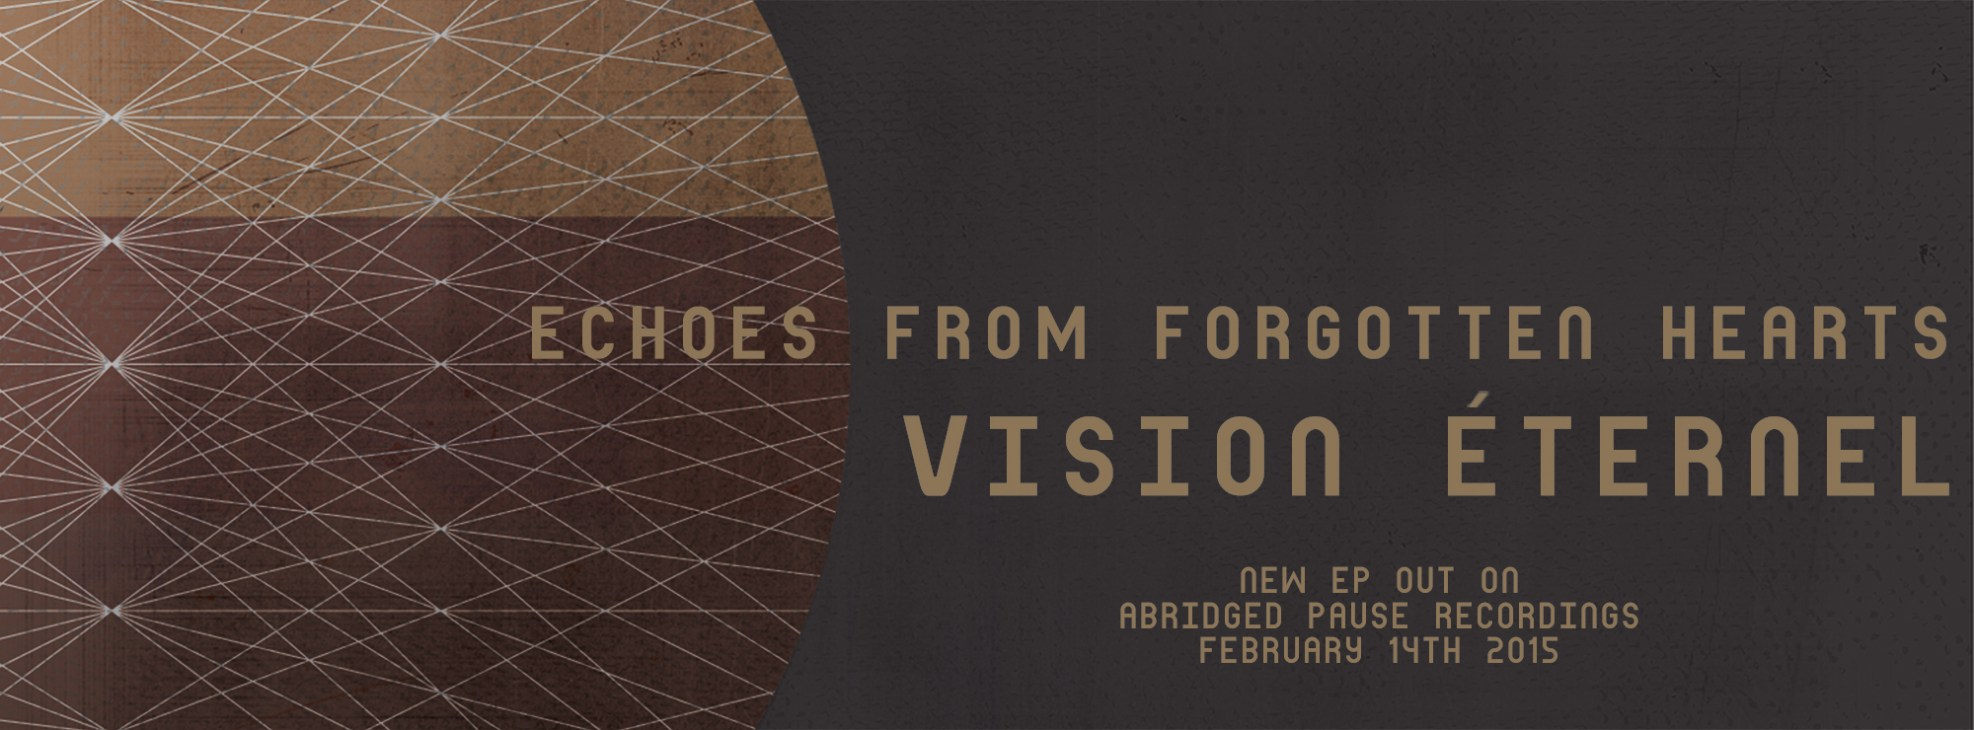 Vision Éternel Echoes From Forgotten Hearts EP Promotional Flyer